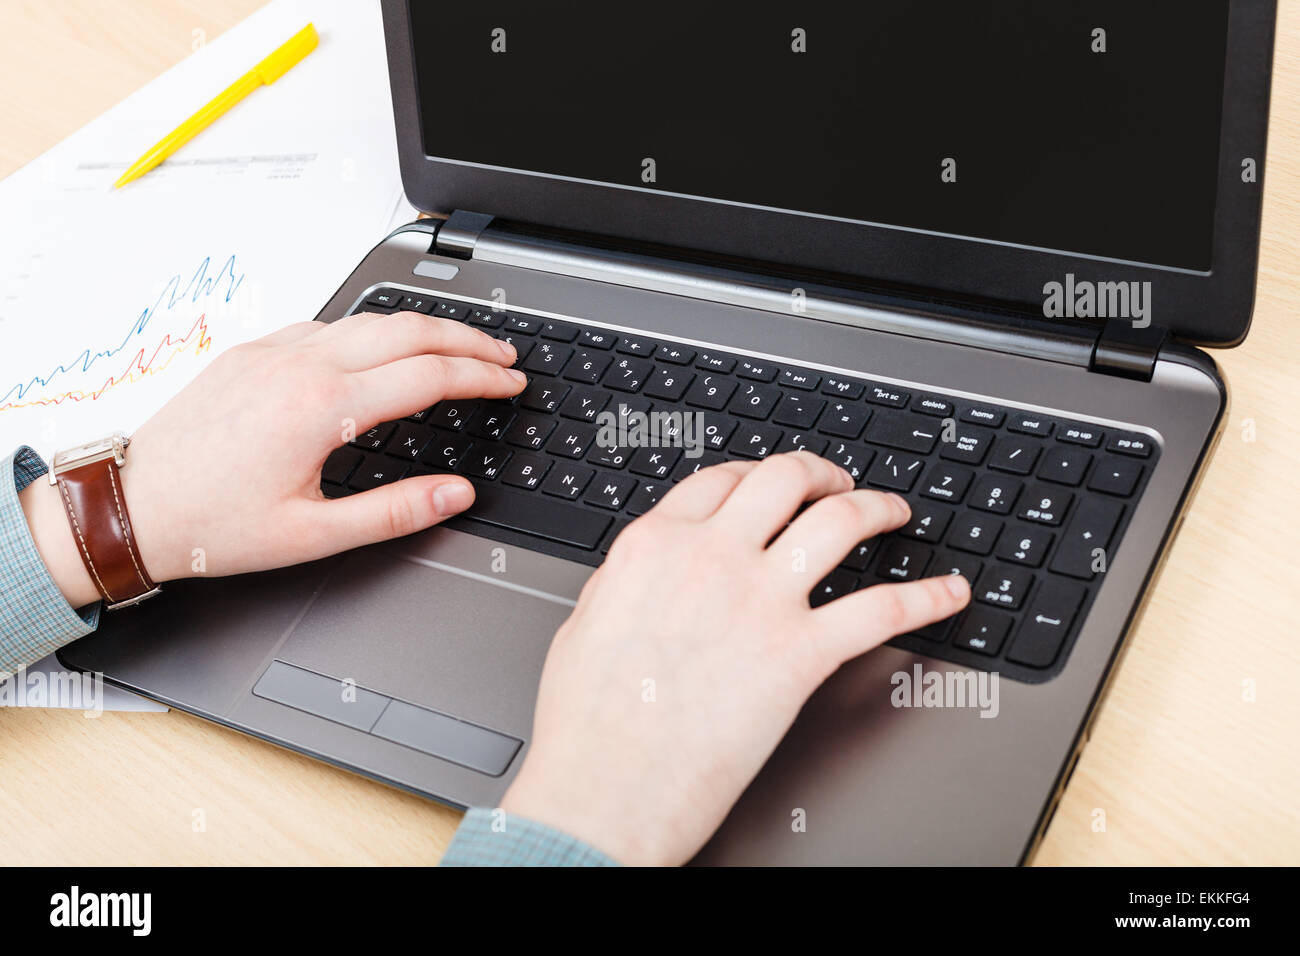 business workflow - working with laptop at office desk - Stock Image